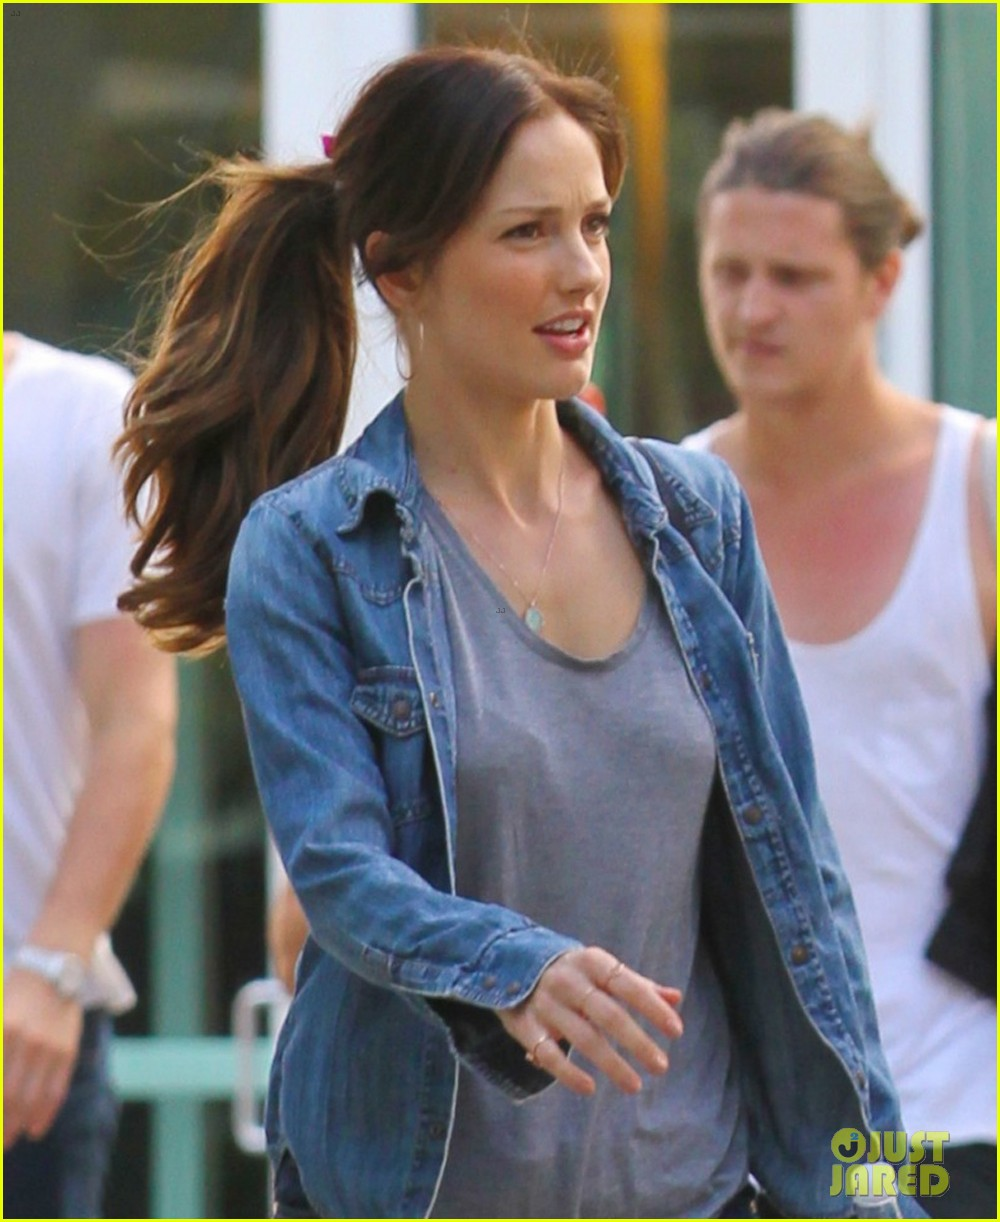 minka kelly grabs chris evans chest at the movies 032904763